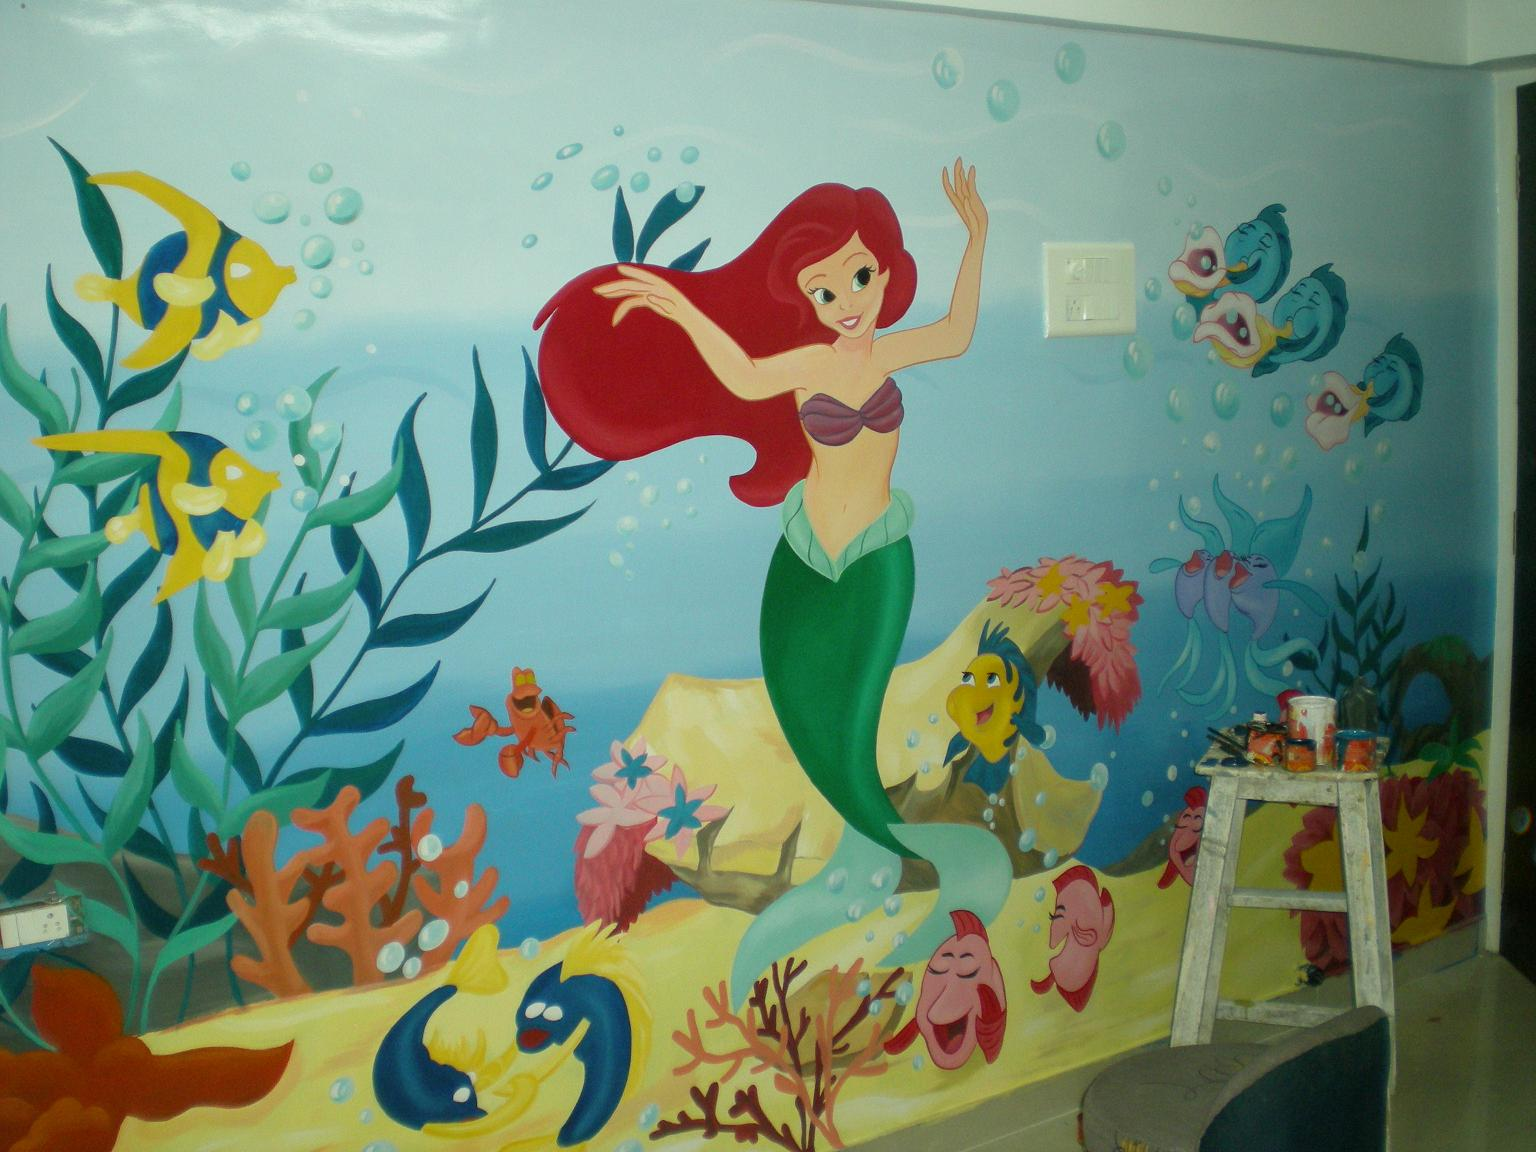 Fish tank painting - Customized Cartoon Wall Painting Mumbai